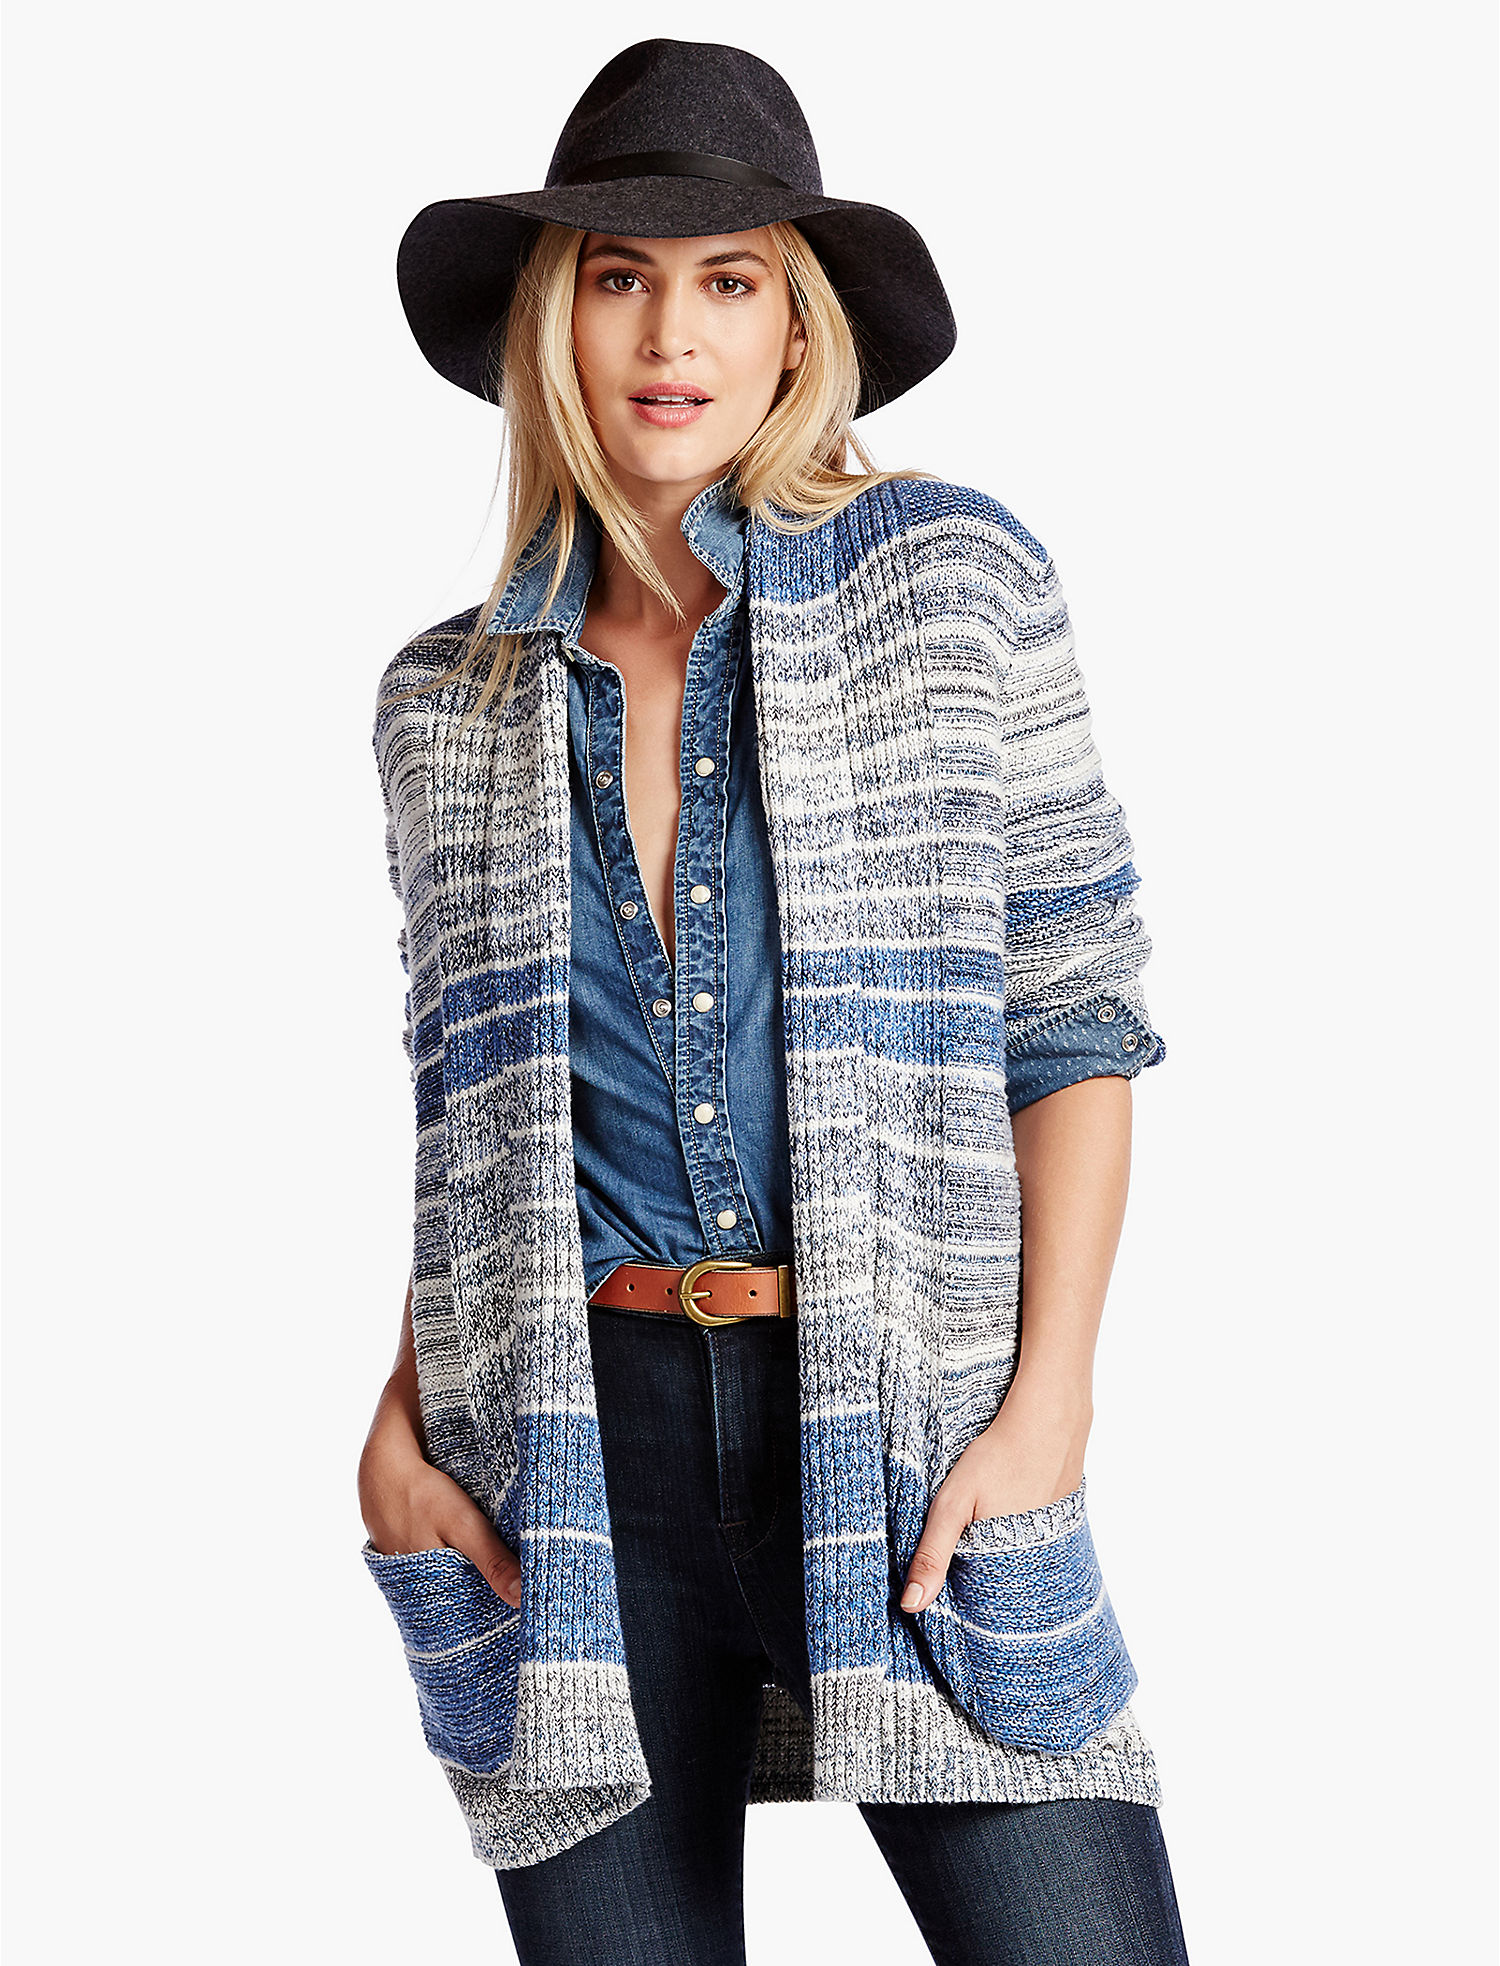 STRIPED SWEATER CARDIGAN - Lucky Brand 2.0